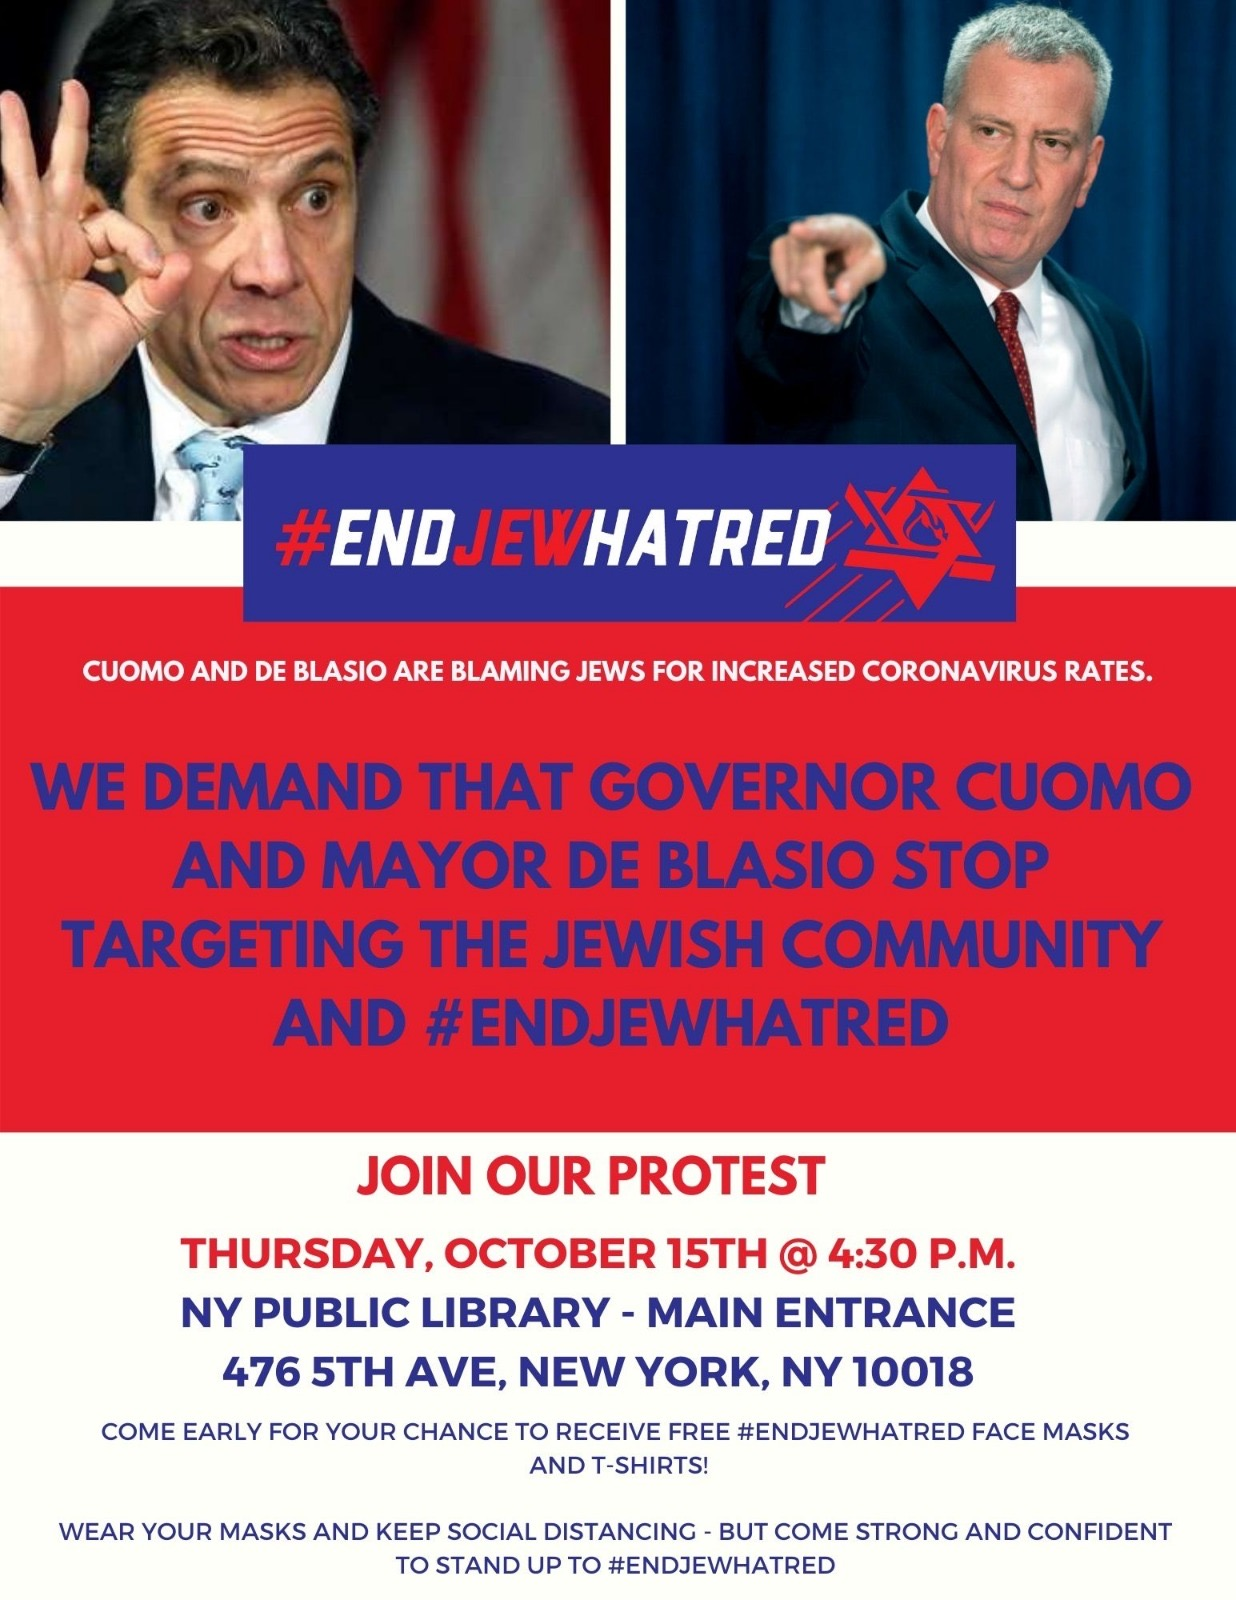 End Jew Hatred, Mayor de Blasio!